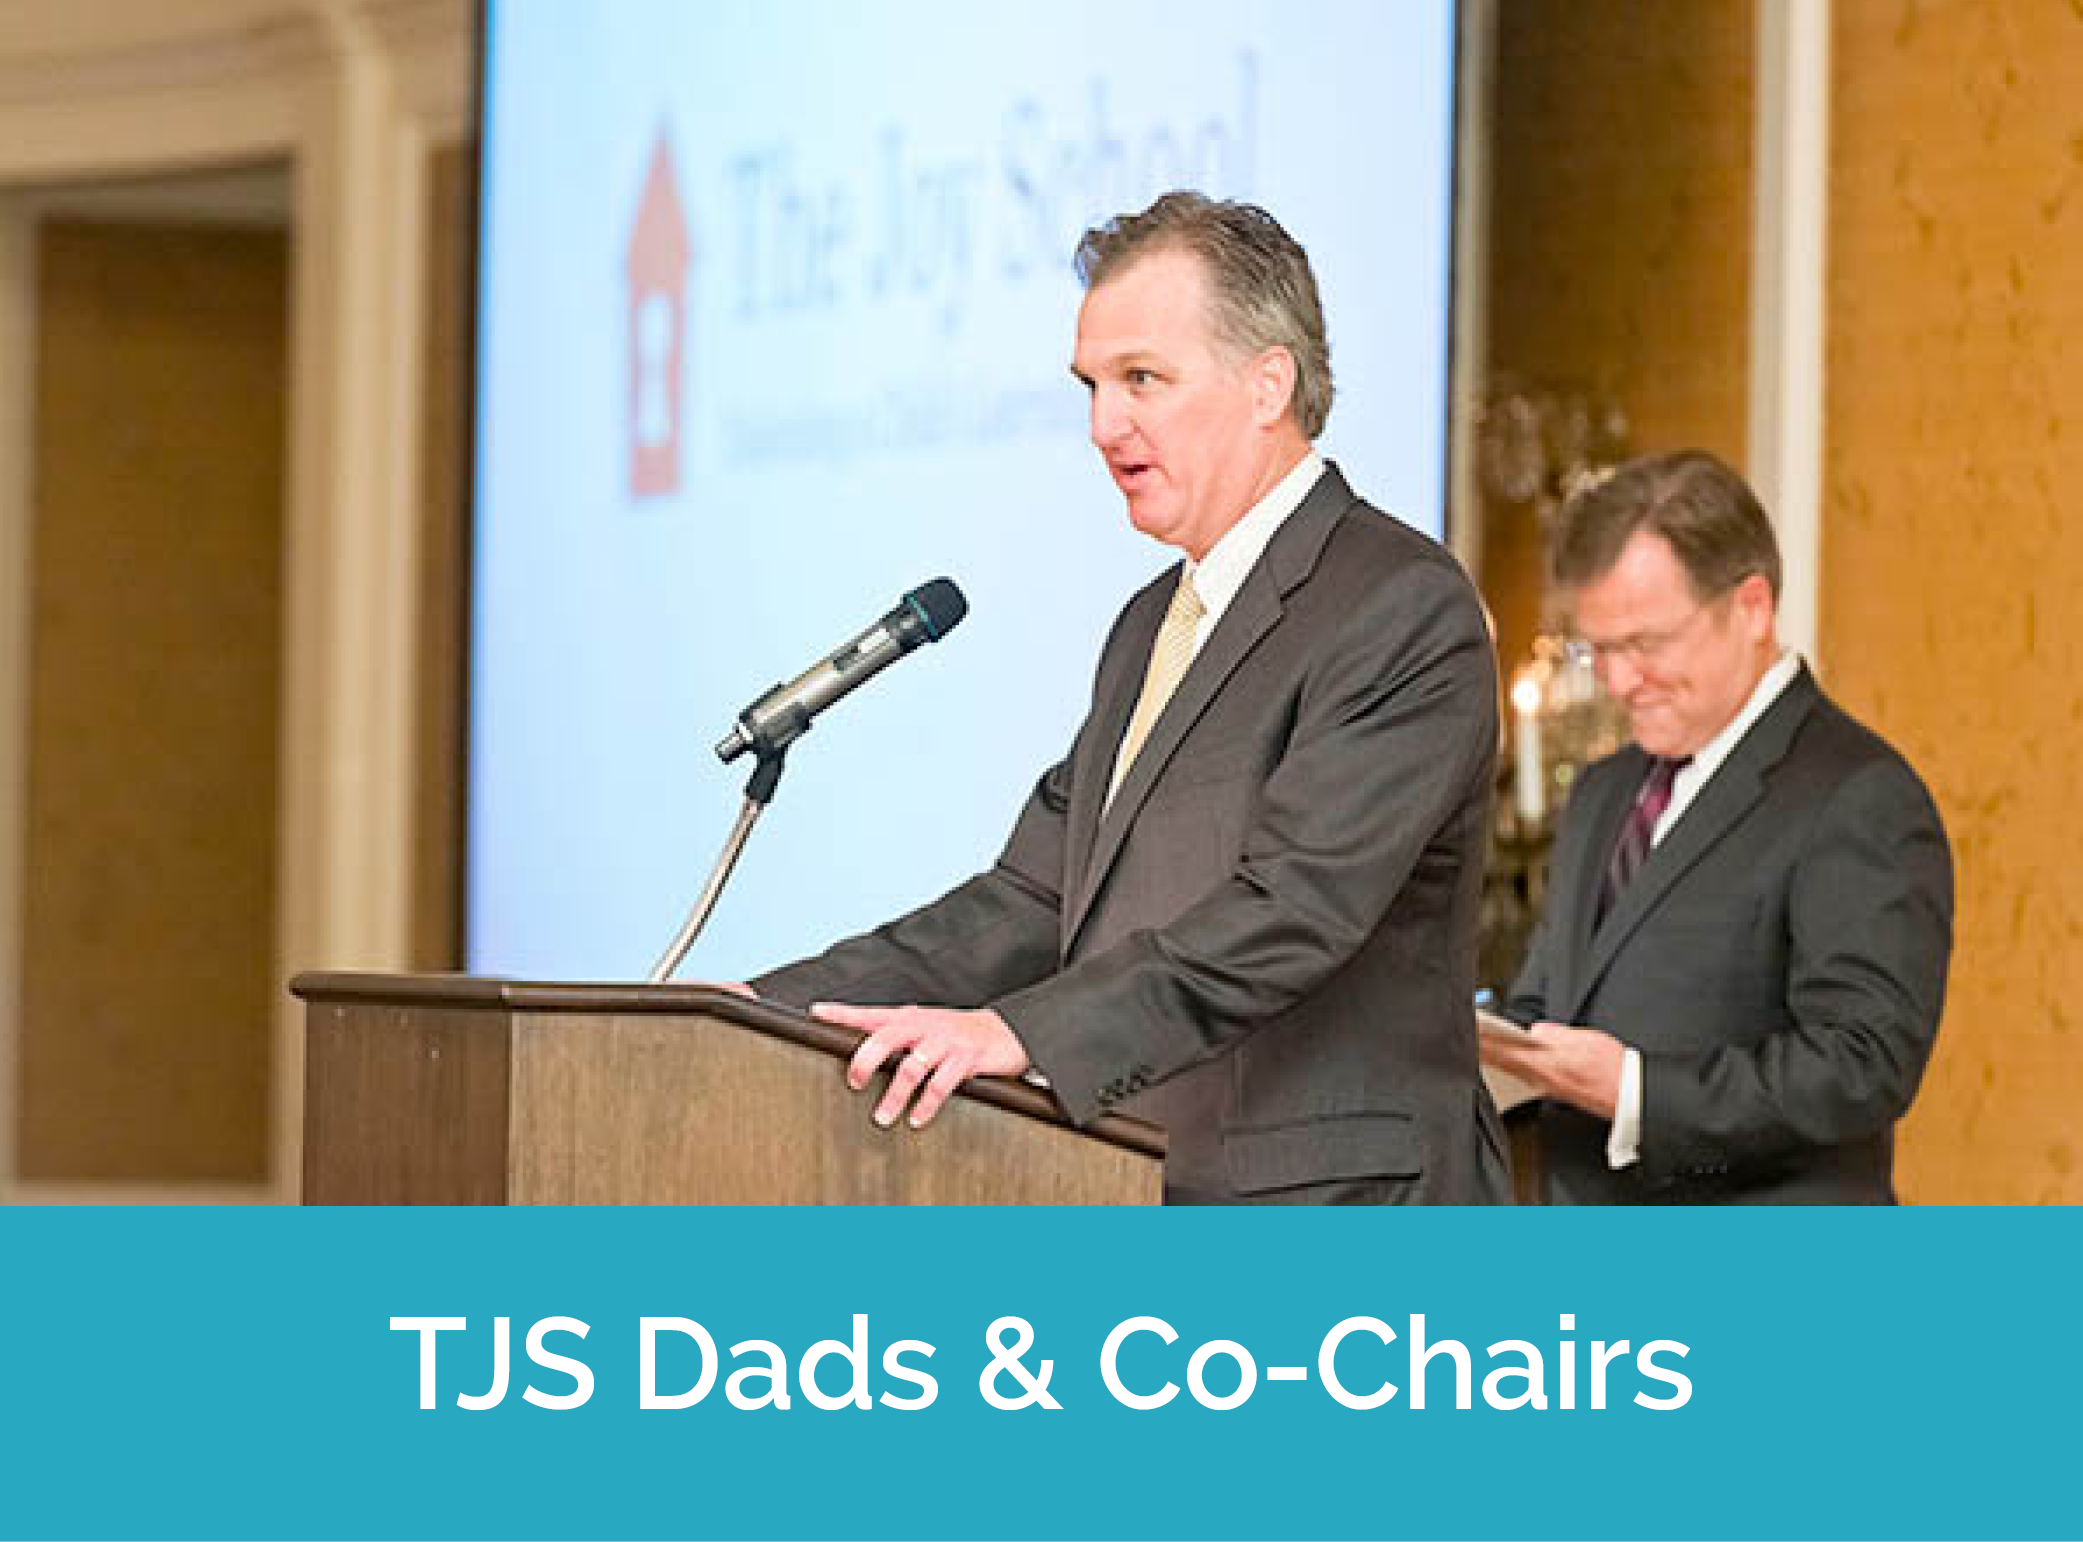 TJS Dads & Co-Chairs